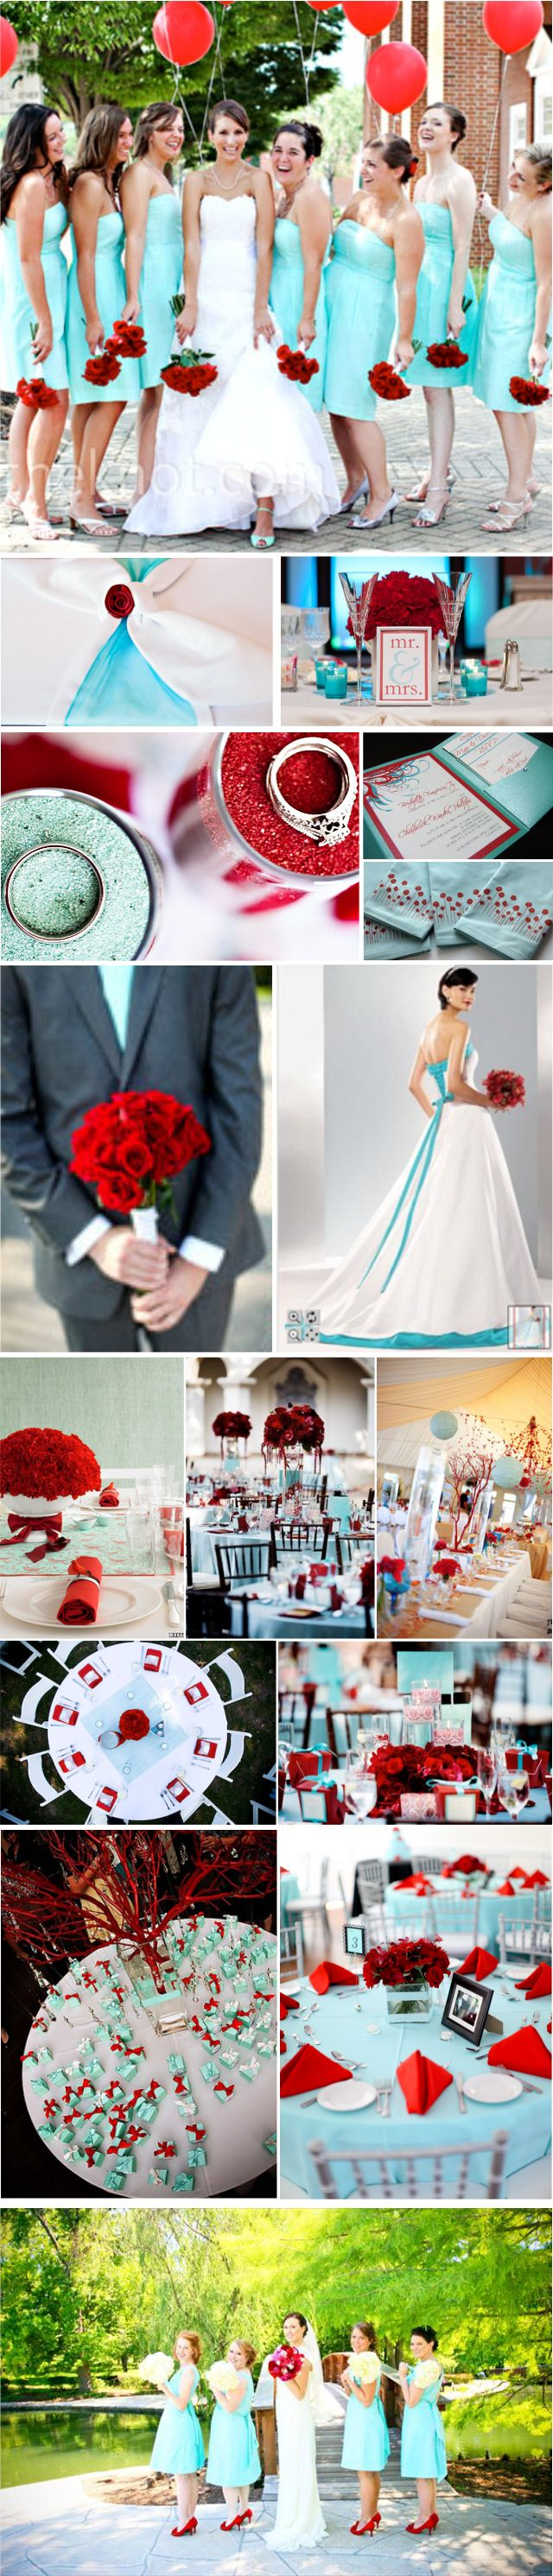 Aqua wedding inspiration